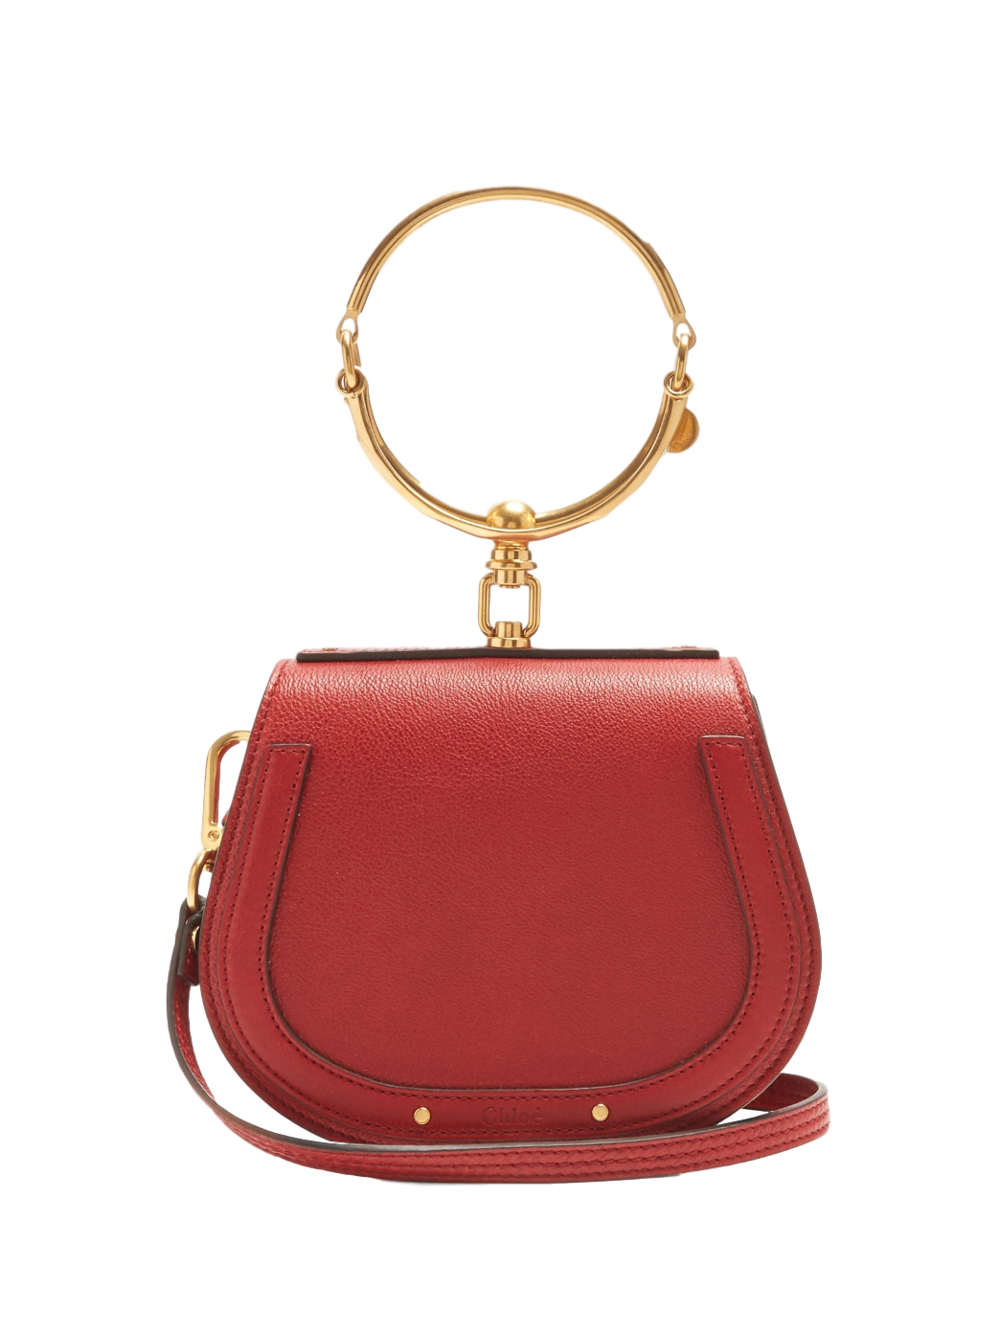 http-__www.matchesfashion.com_products_Chloé-Nile-small-leather-and-suede-cross-body-bag-1152394_clipped_rev_1.png